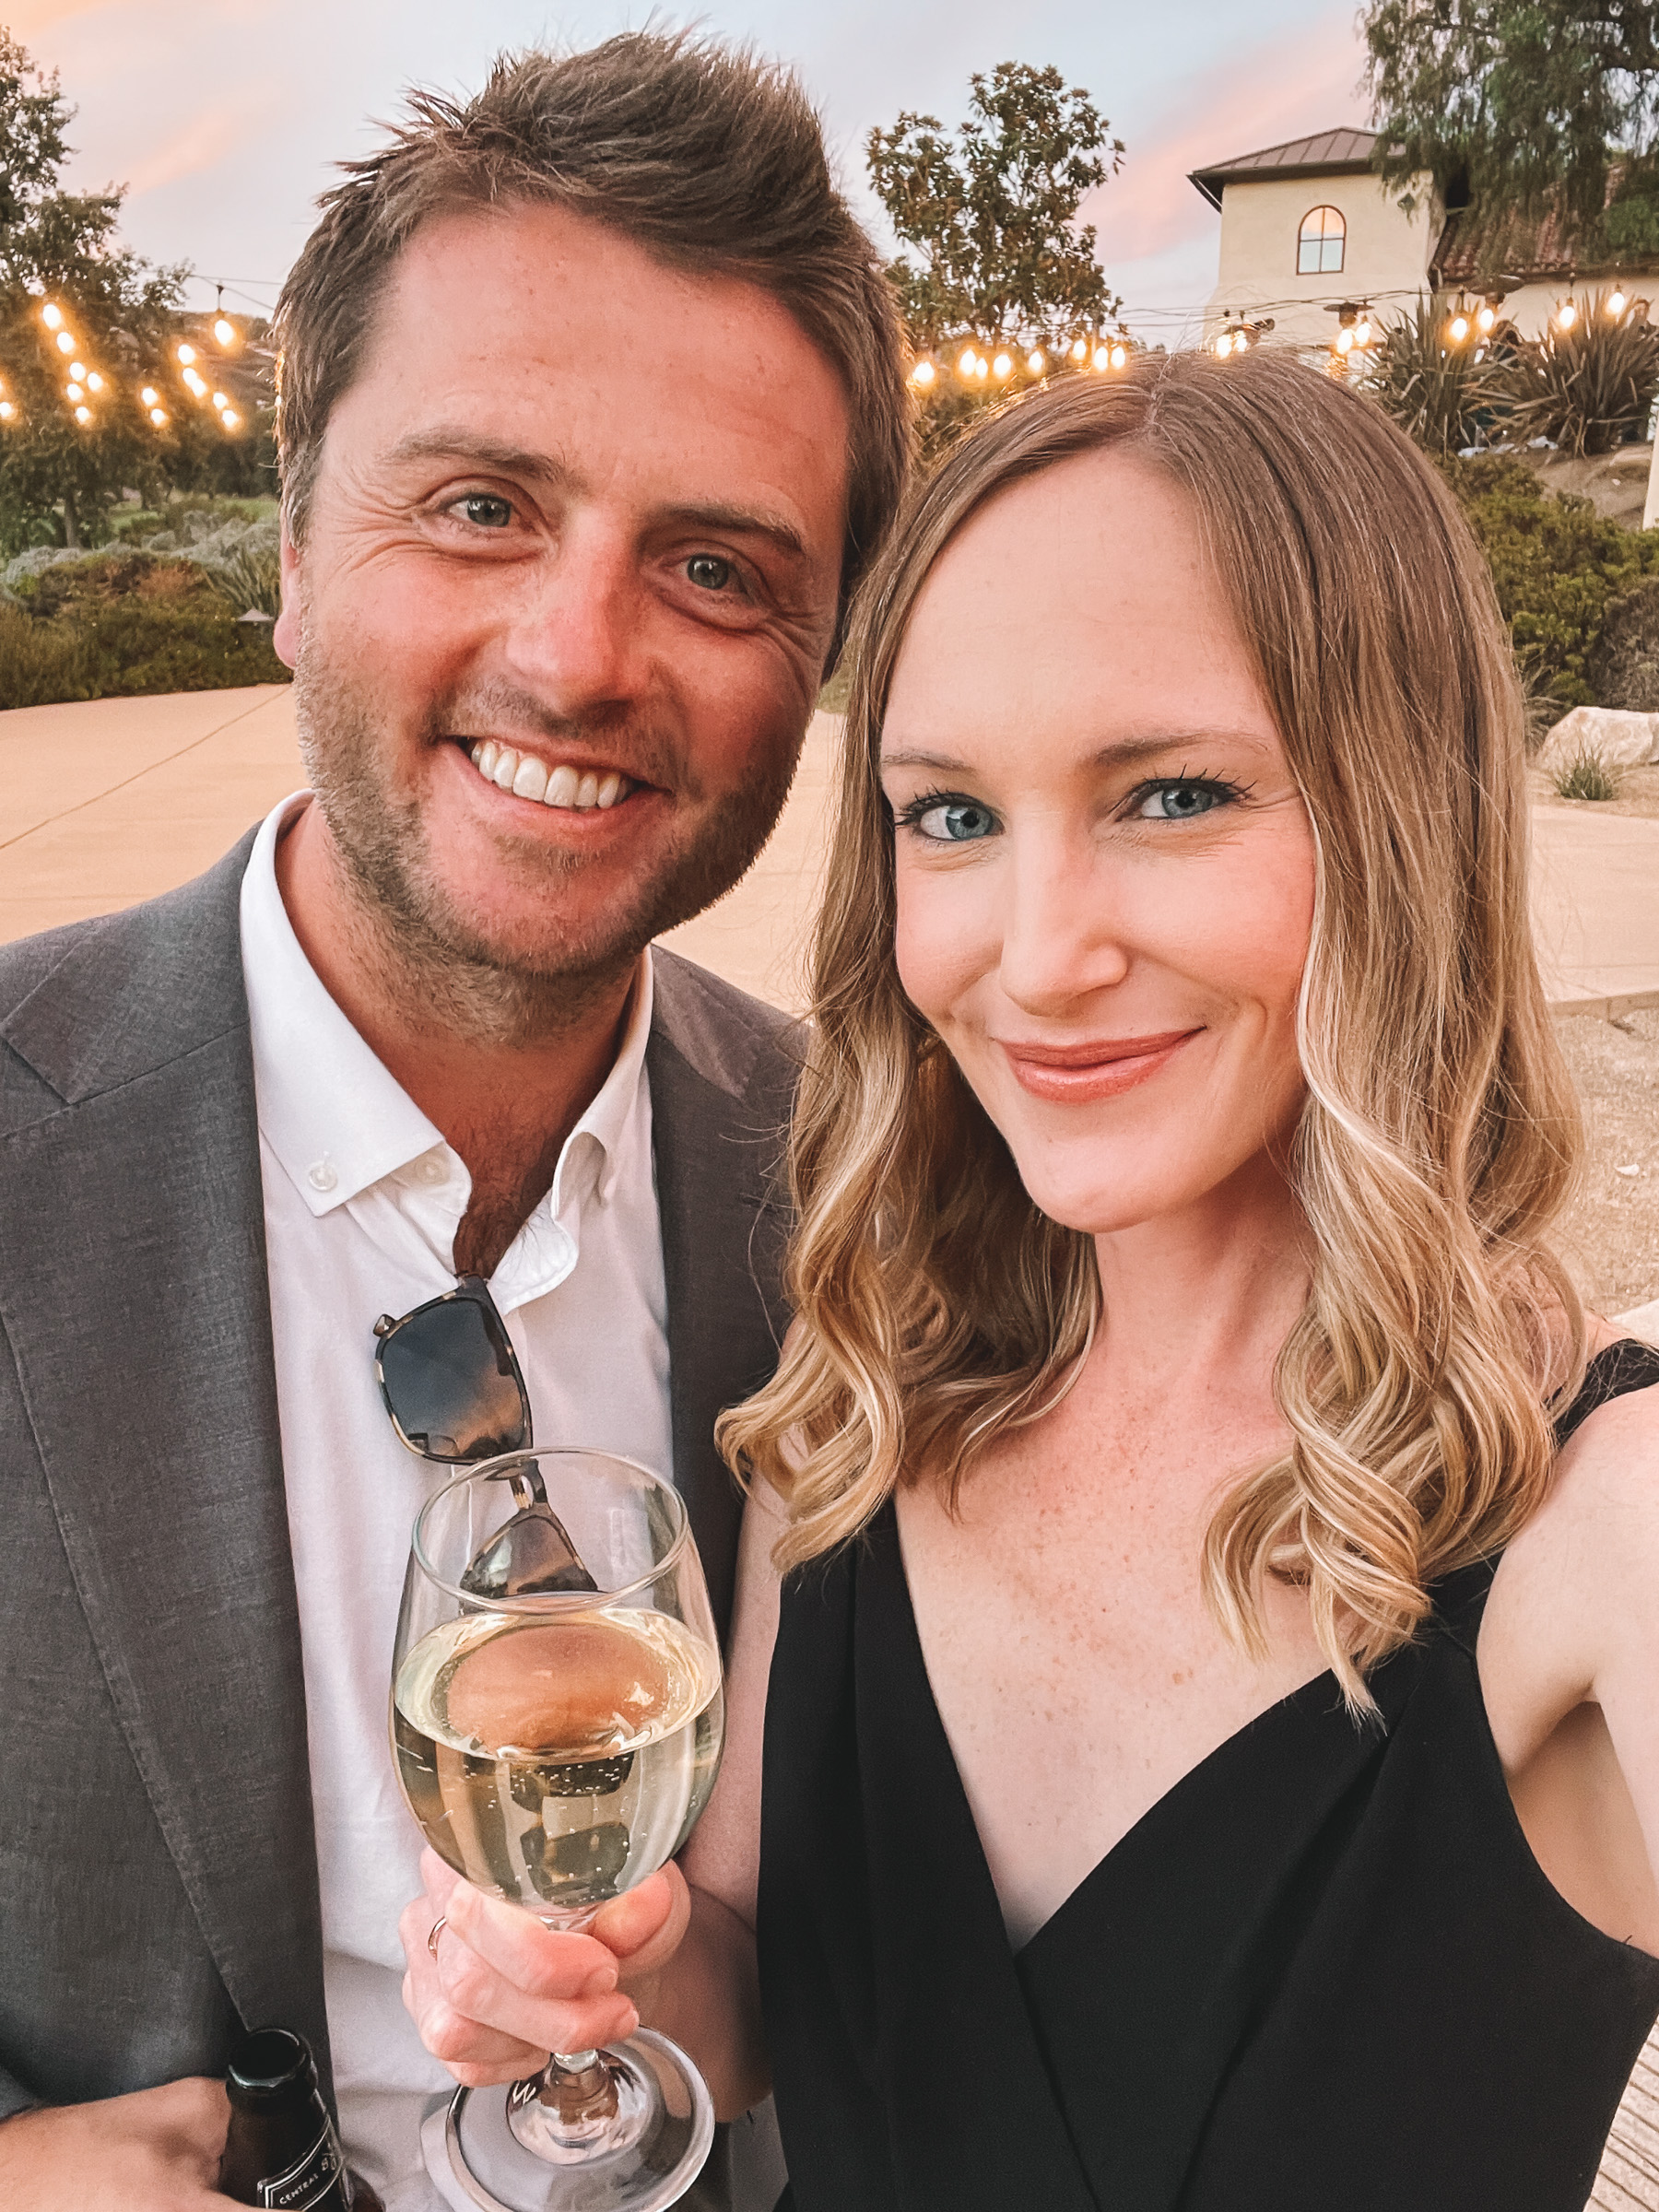 Mitch and Kelly wedding guest selfie